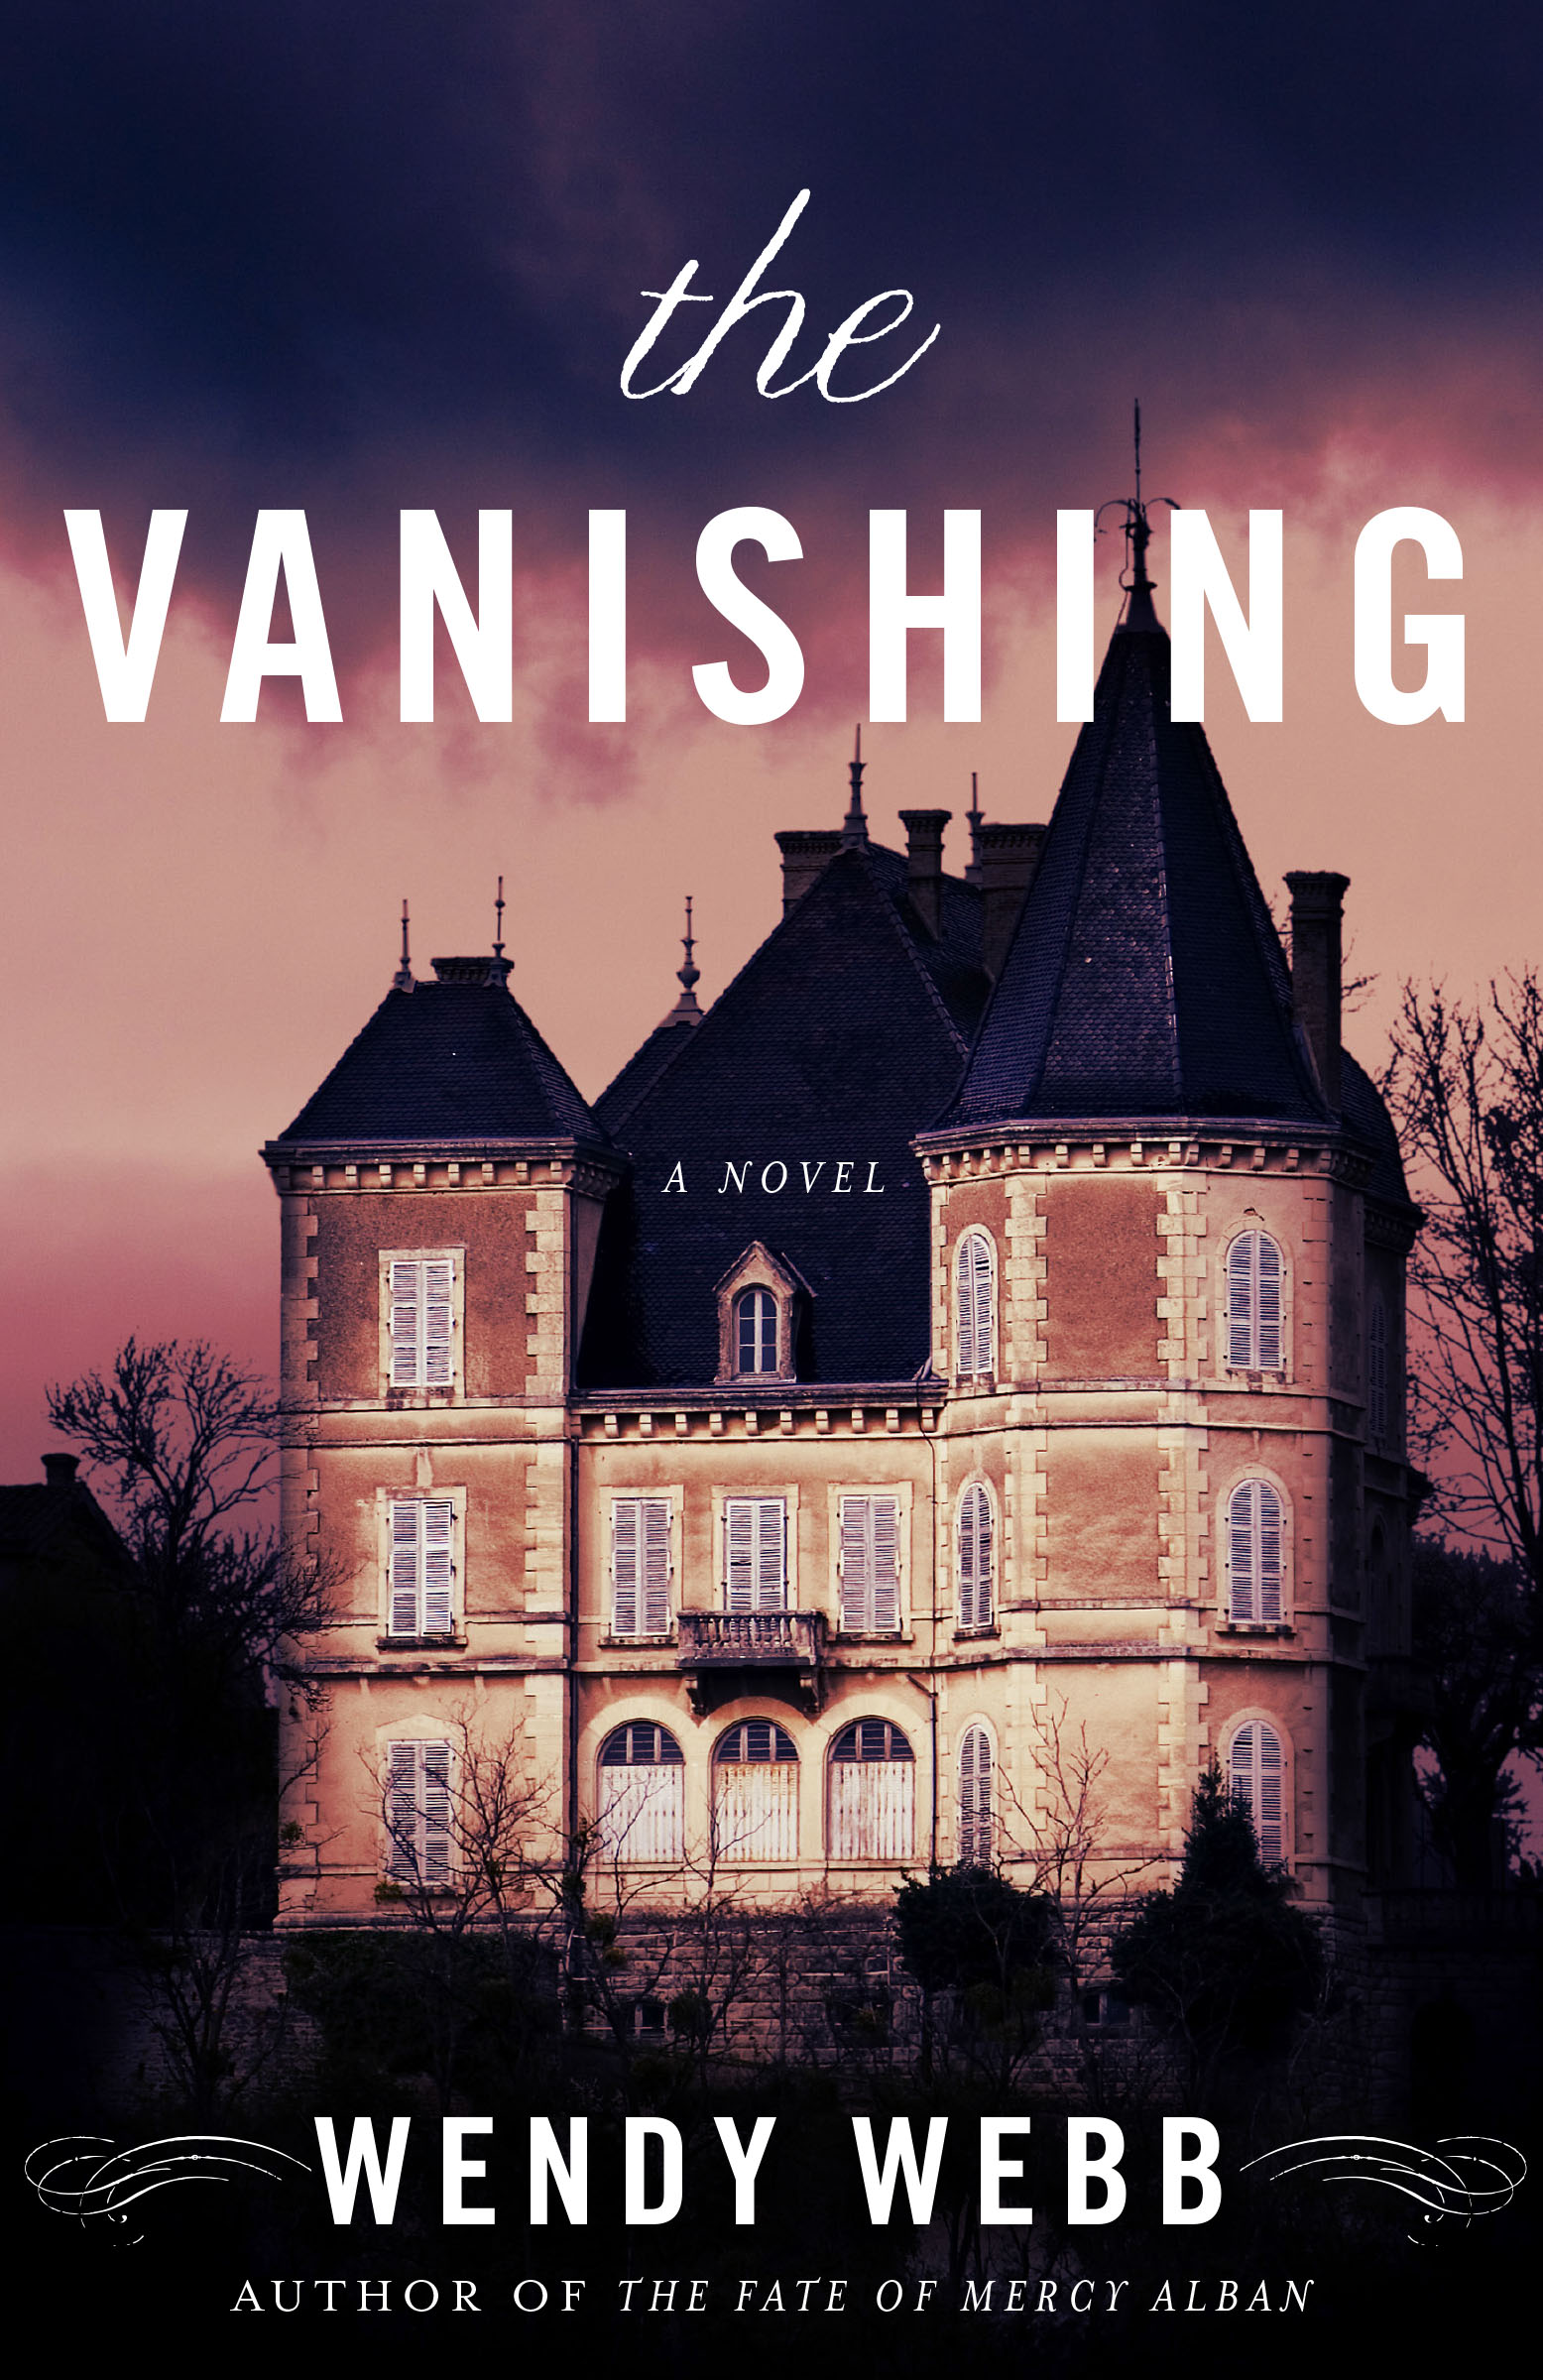 Goodreads Giveaway: Win a Copy of The Vanishing before it's in stores!